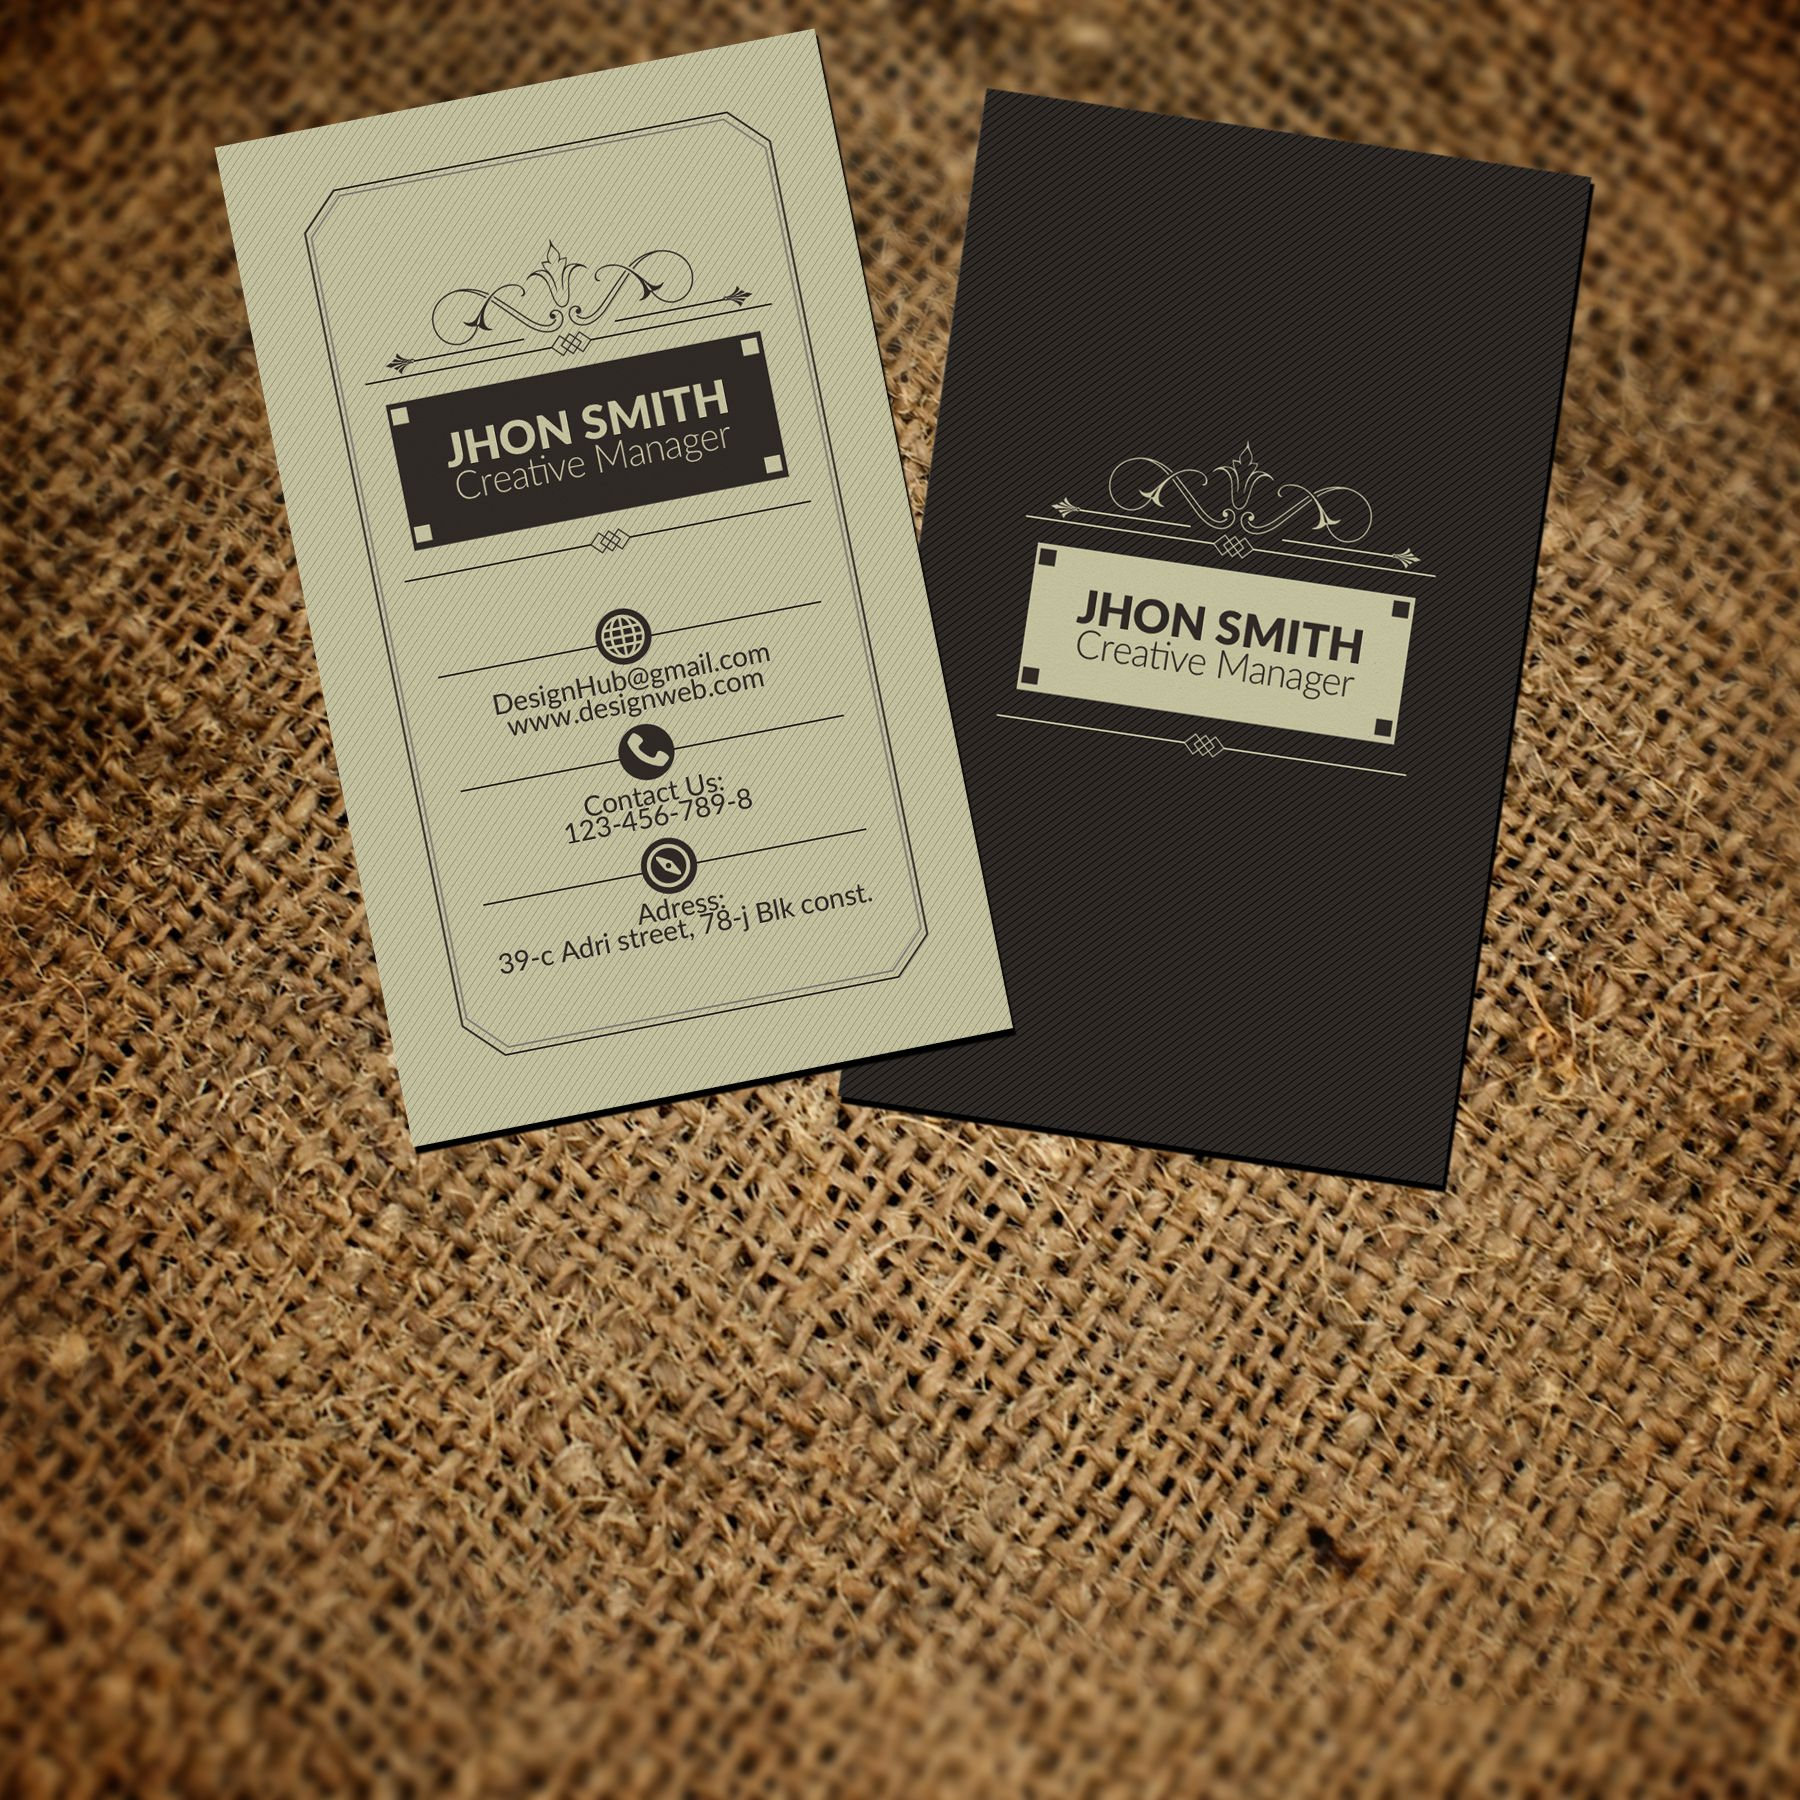 Vertical retro vintage business card by psd templates on vertical retro vintage business card by psd templates on creativemarket flashek Gallery